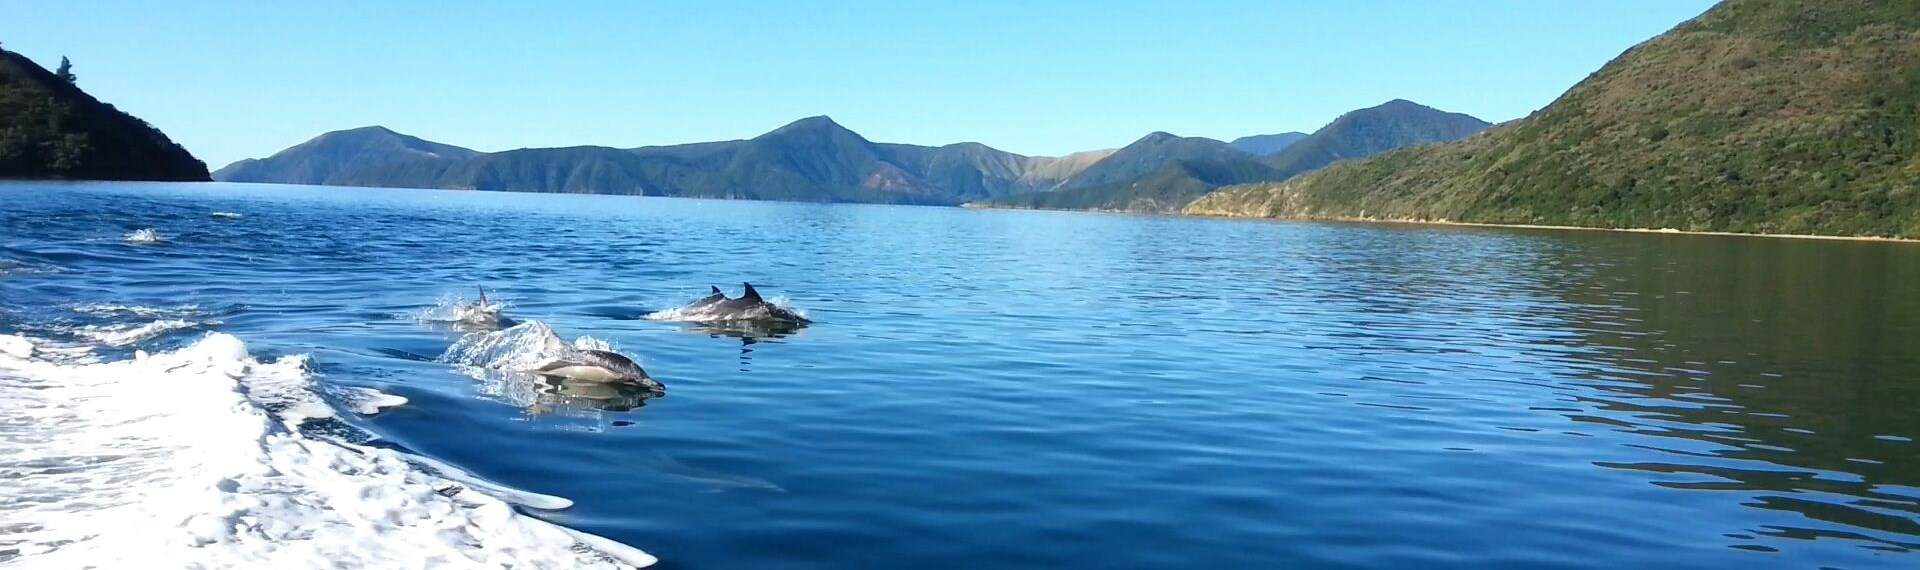 Another frequent dolphin pod spotting in the wake of our Pelorus Mail Boat.